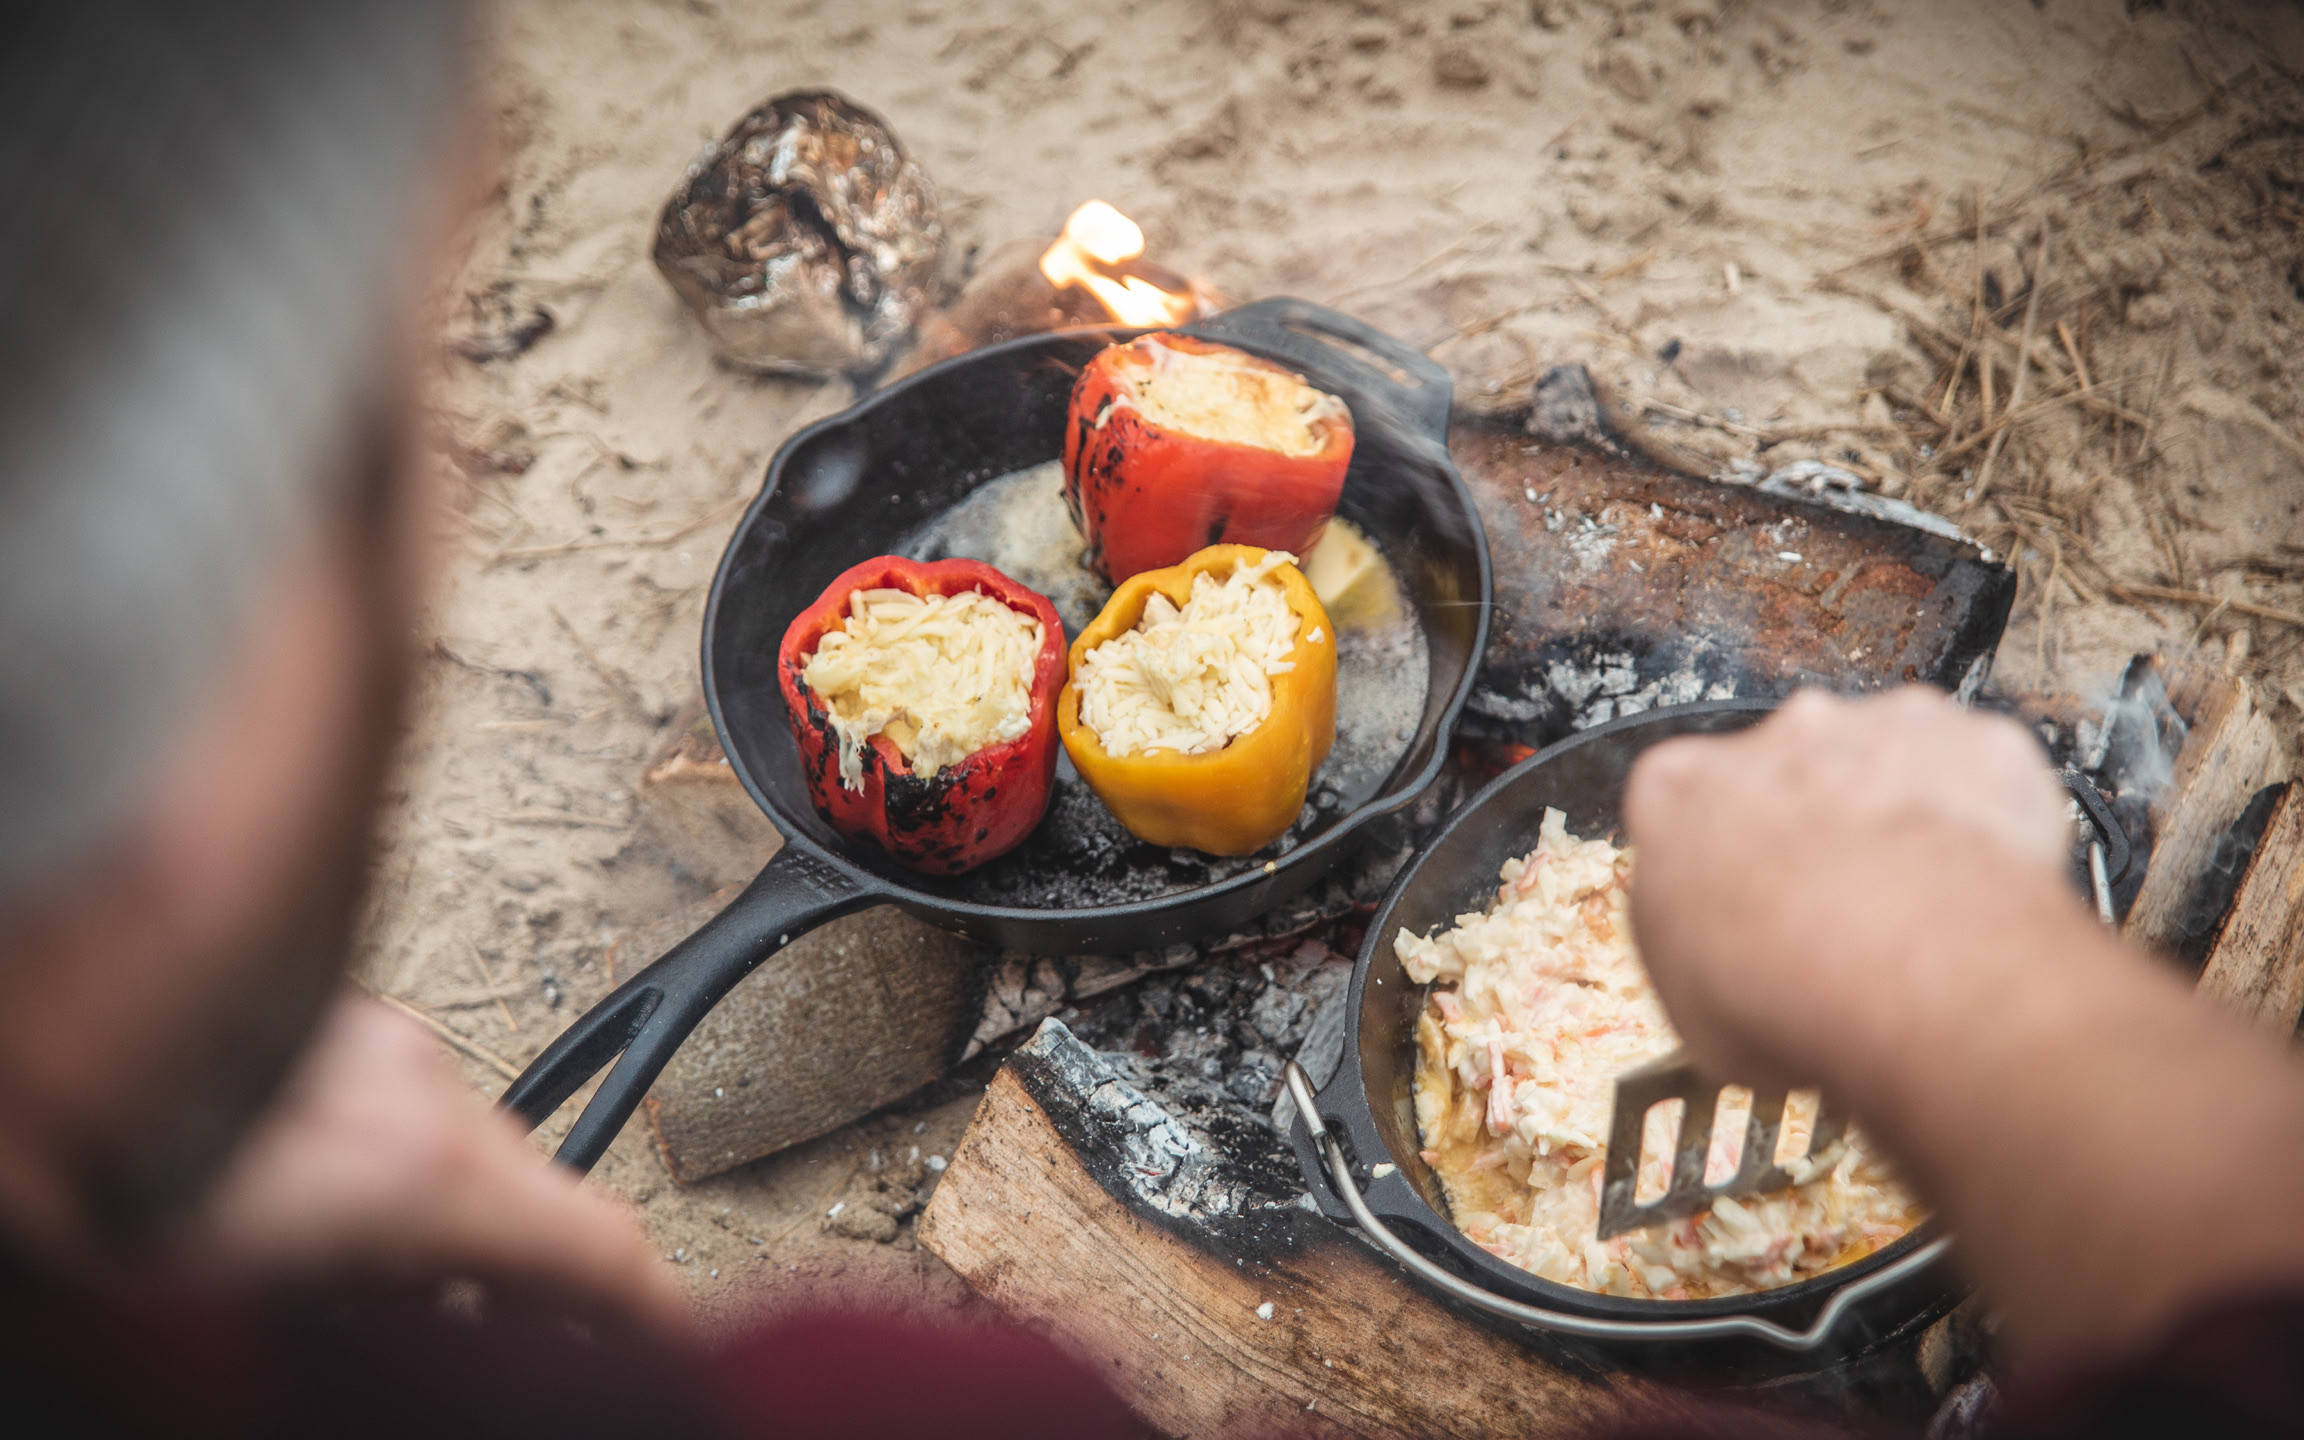 Campfire cooking cast iron skillet dutch oven